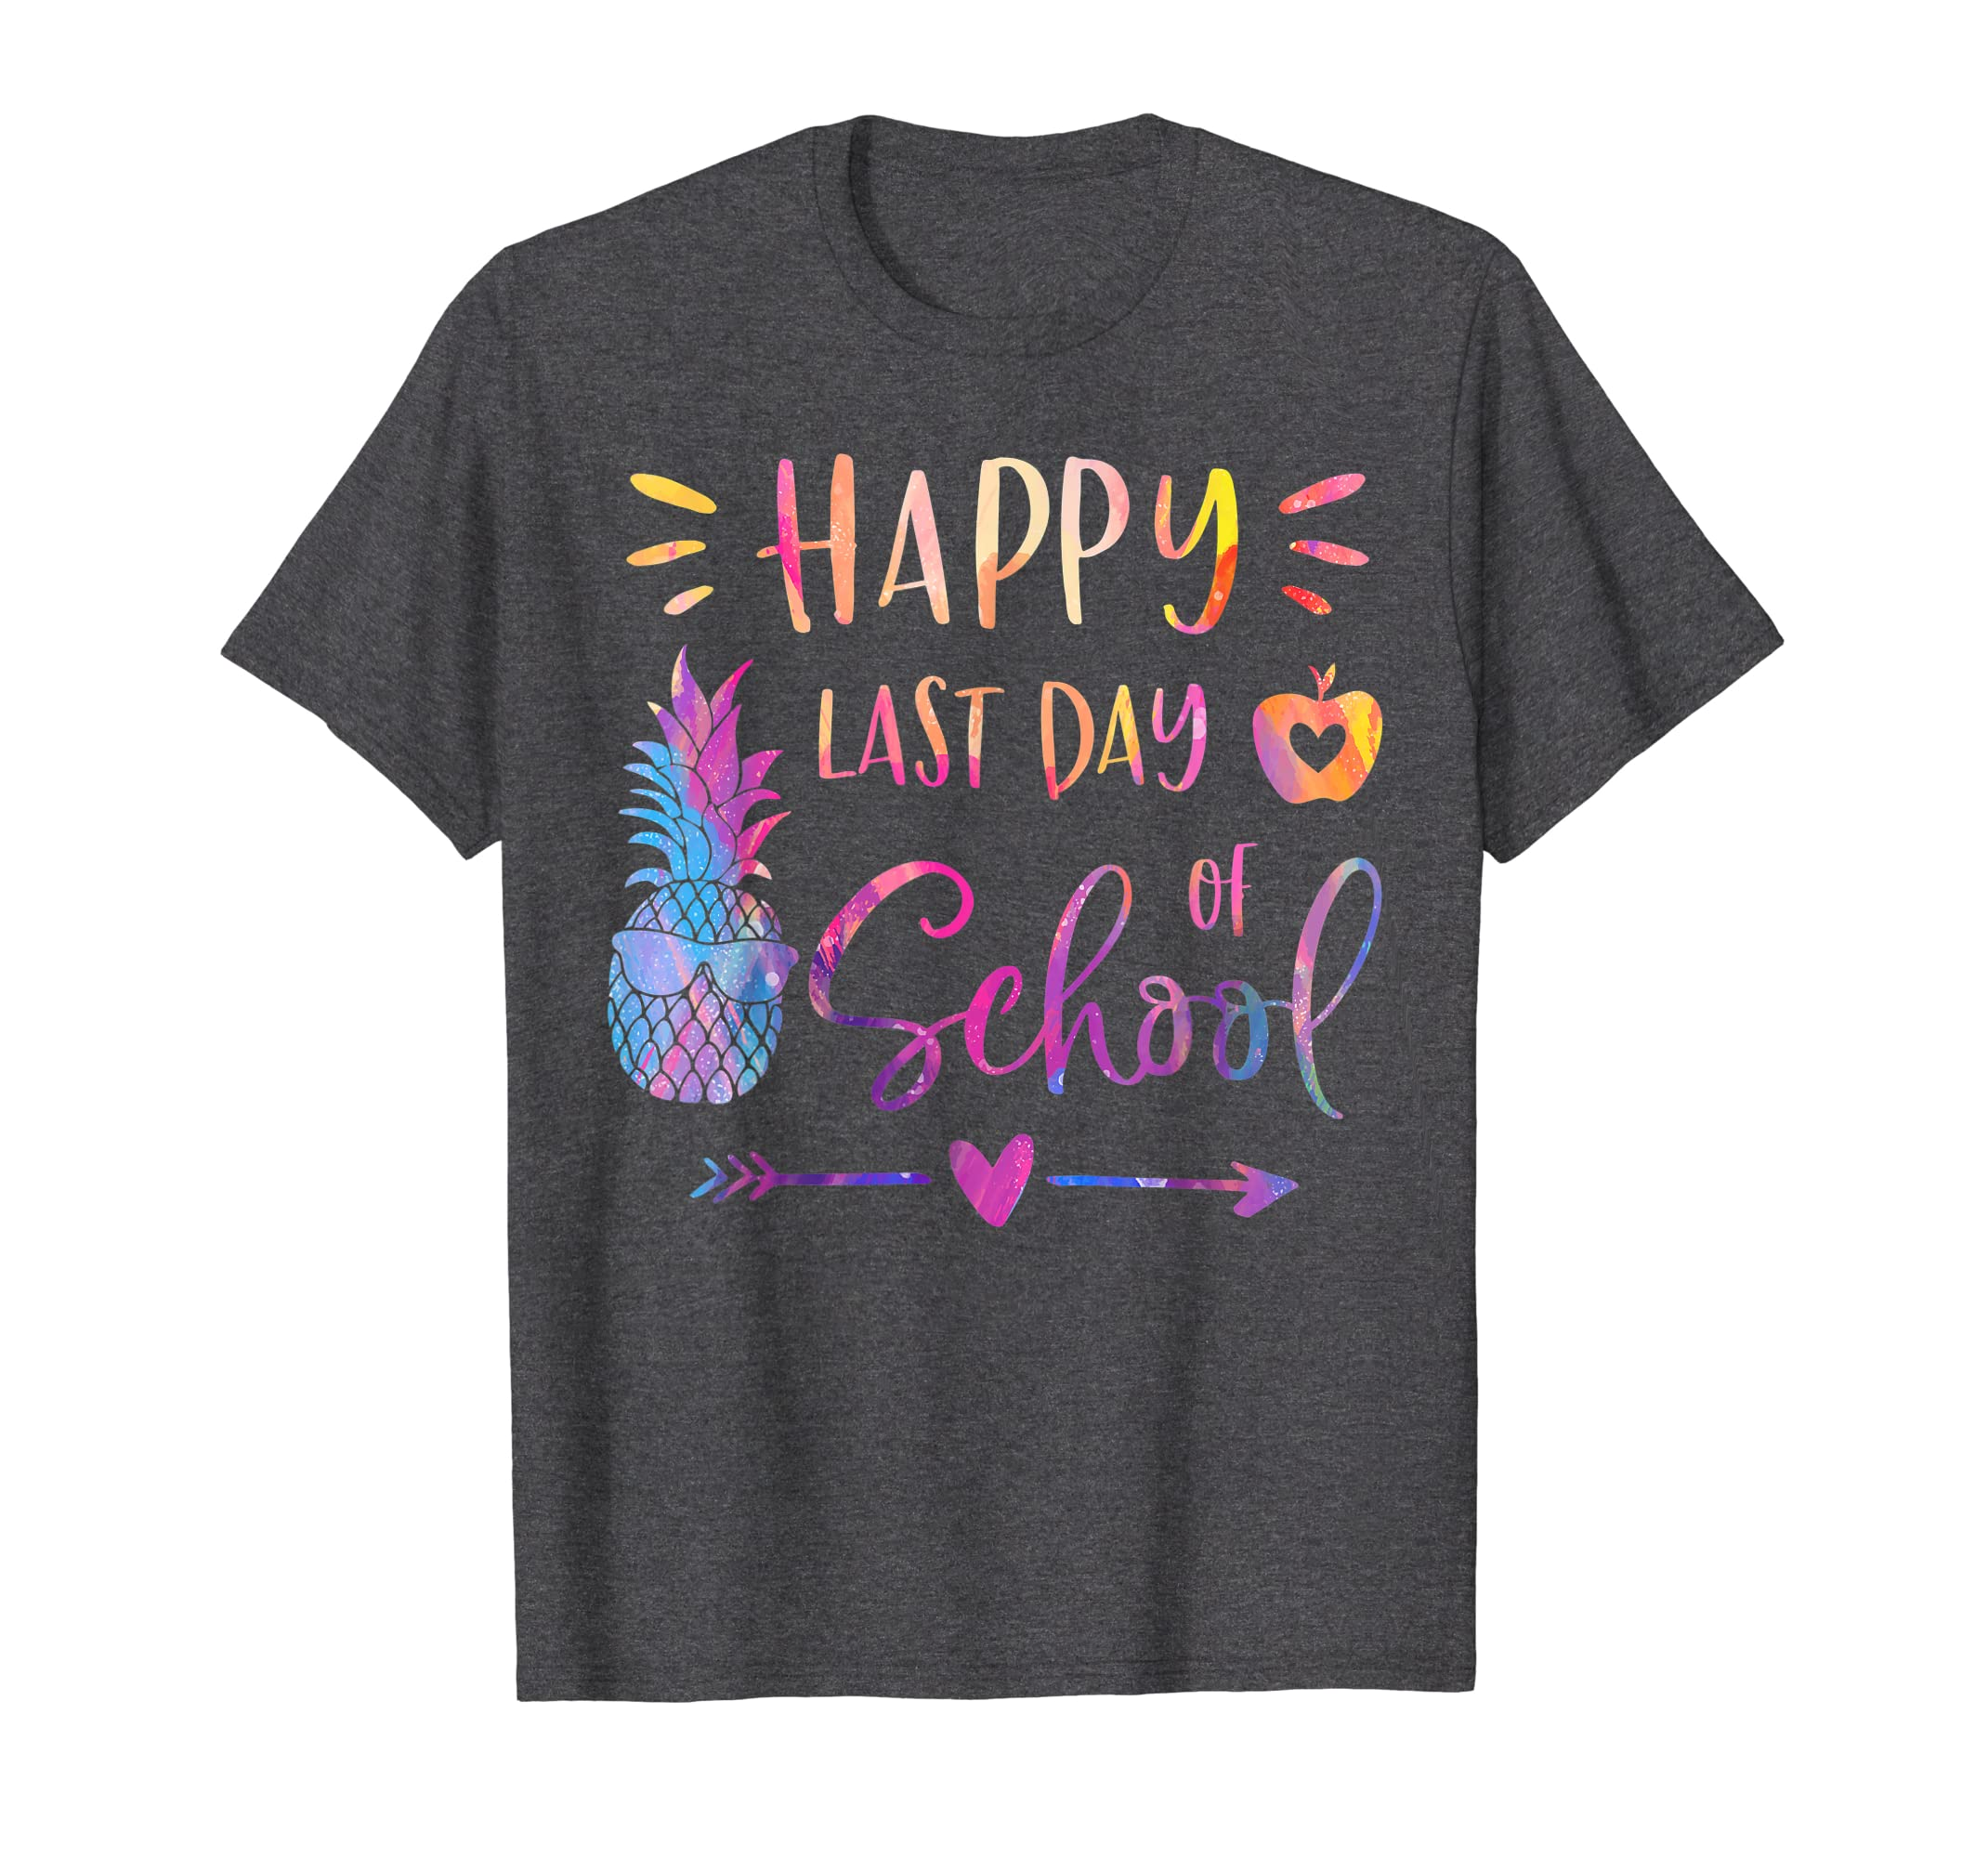 Teacher Shirts, Happy Last Day Of School Shirt,Teacher Gifts T-Shirt-Protee